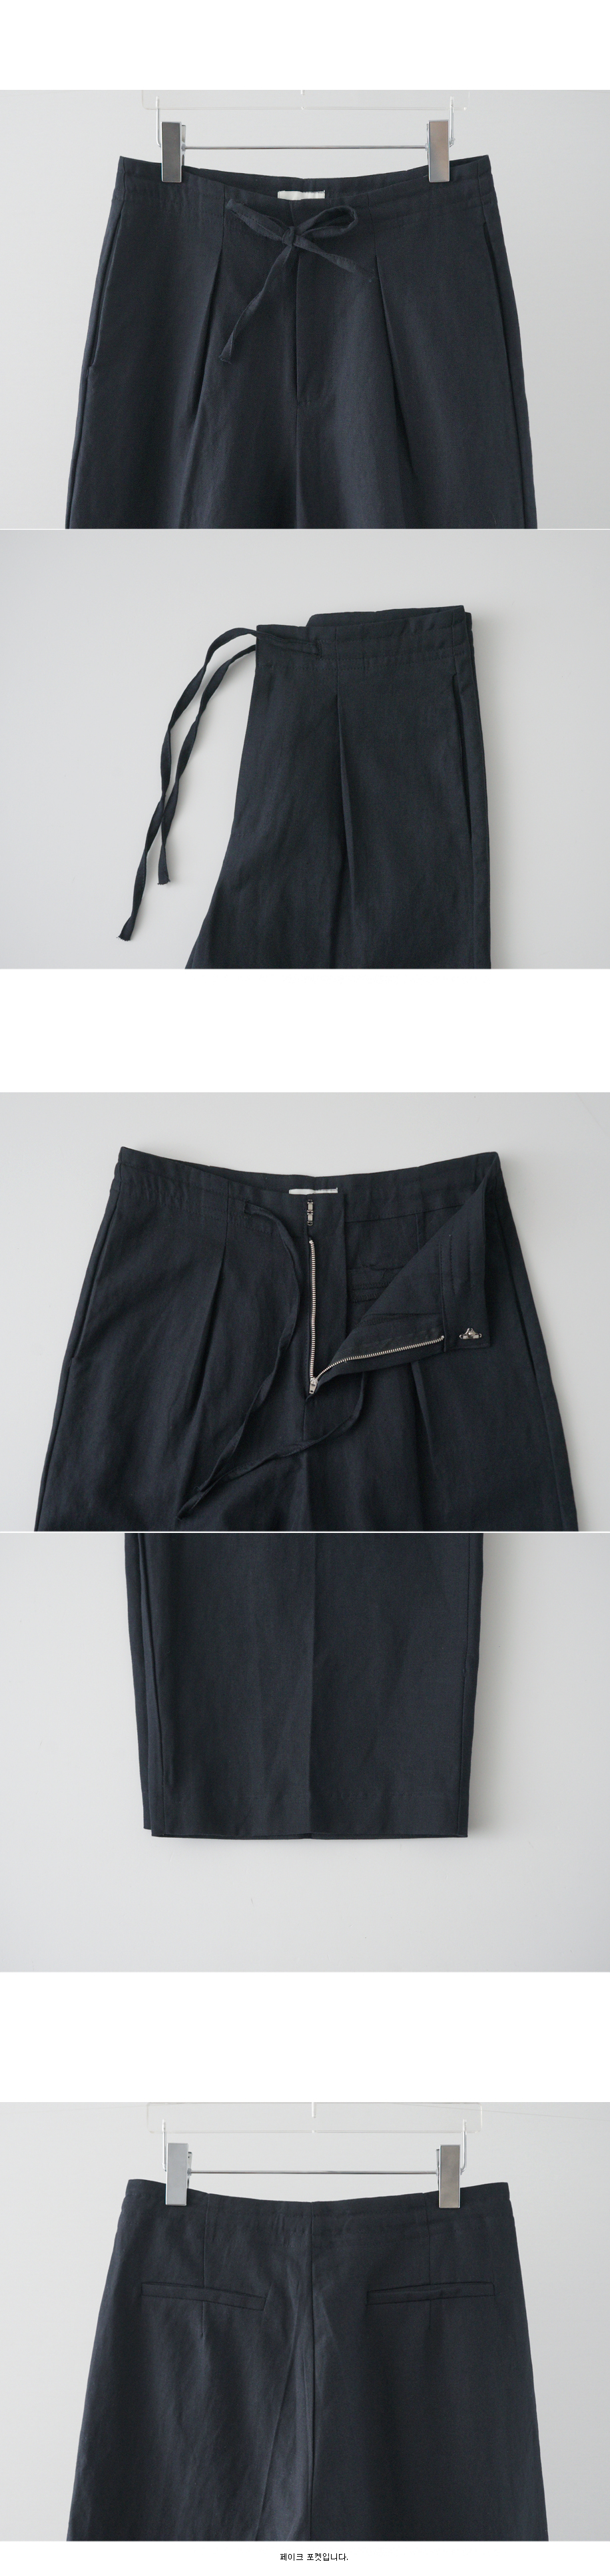 lazy wide silhouette pants